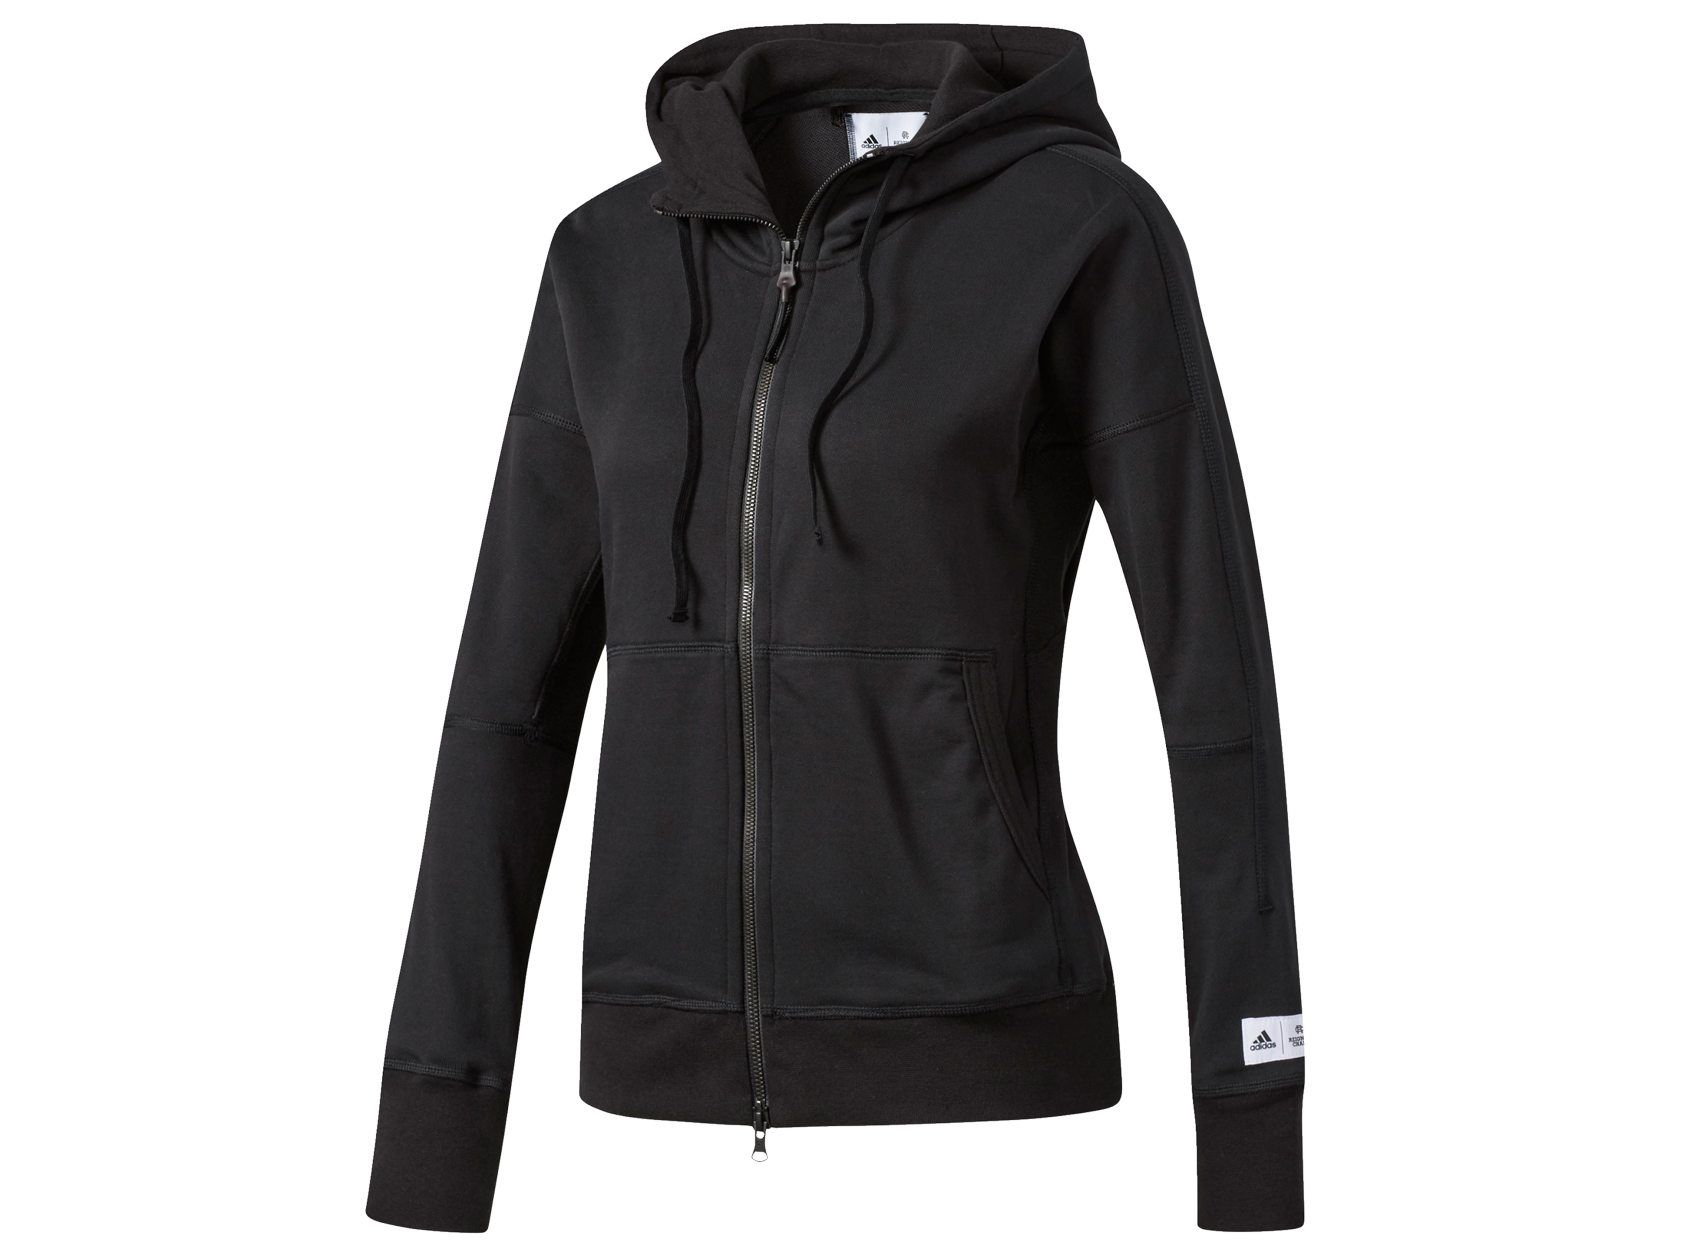 Adidas x Reigning Champs Women's AARC FTFZ HOODY | Adidas